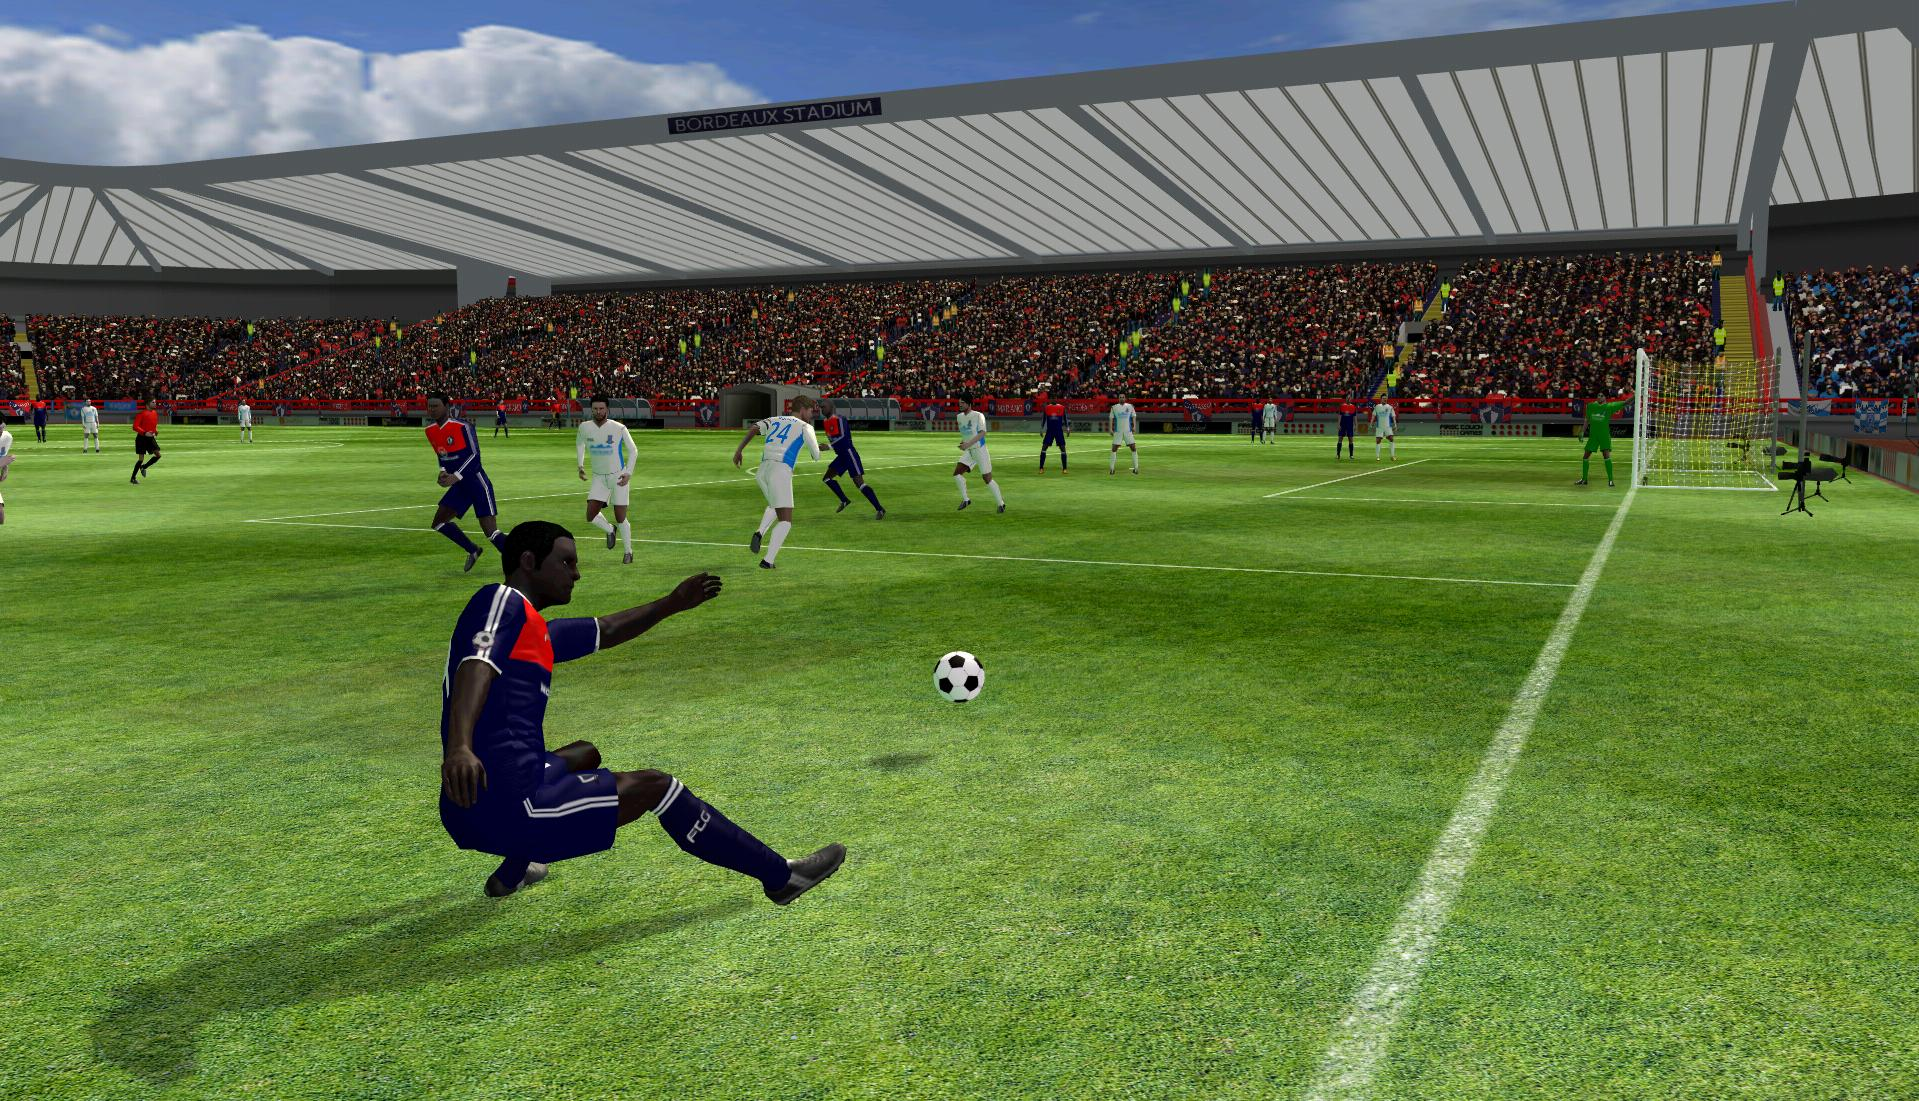 First Touch Soccer 2015 APK Download - Free Sports GAME for